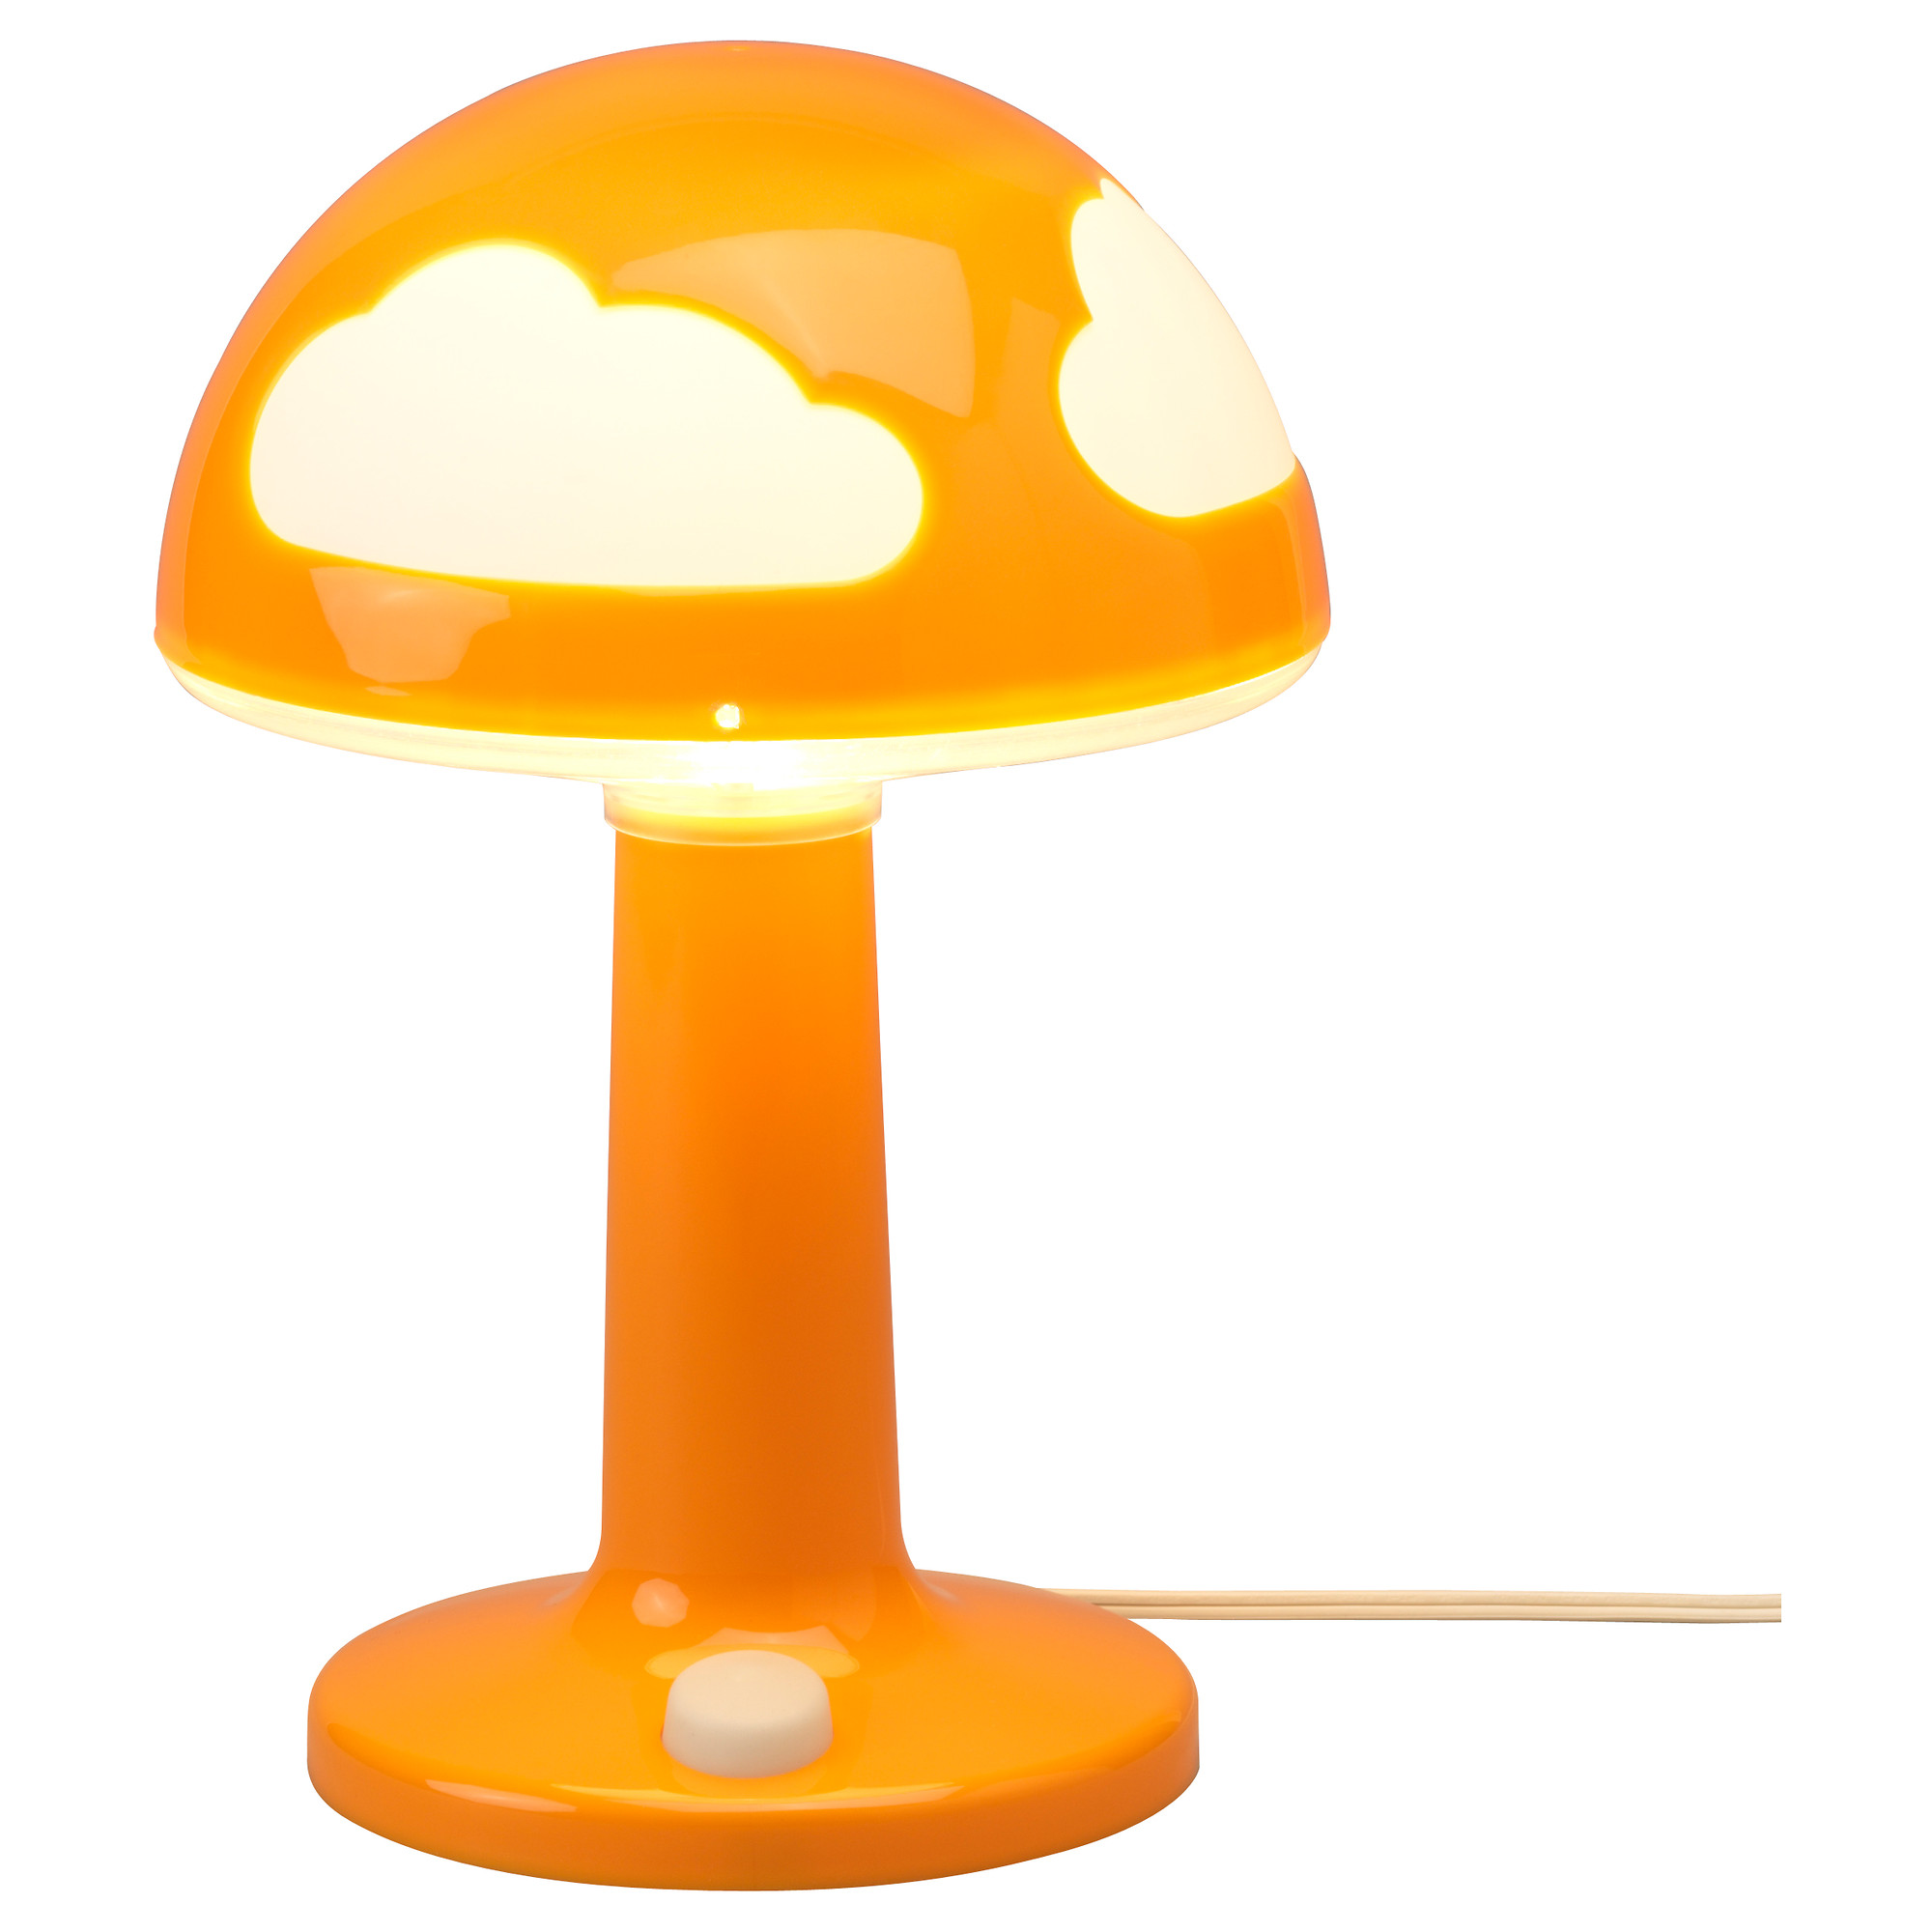 Boys table lamps 10 ways to light up your little boys life boys table lamps 10 ways to light up your little boys life geotapseo Choice Image